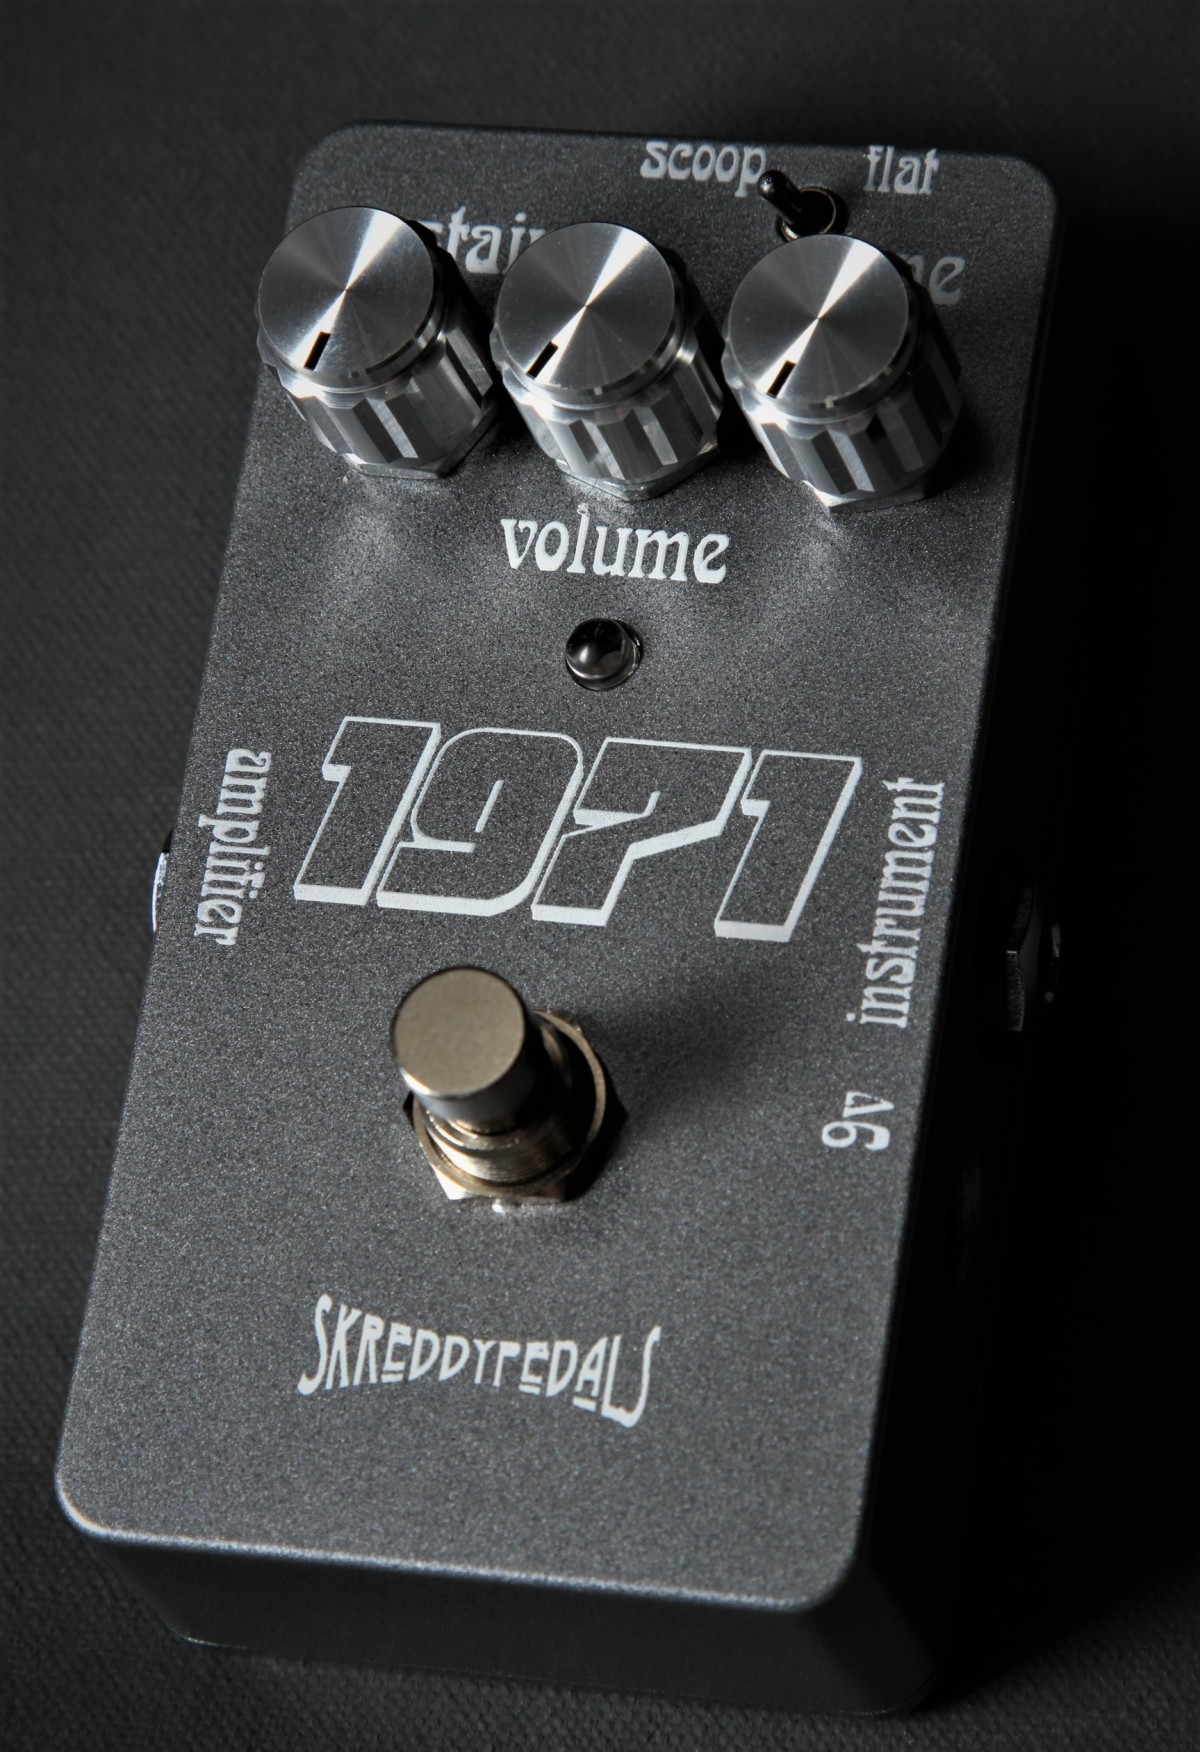 skreddy 1971 distortion overdrive pedals types of guitar pedals effects. Black Bedroom Furniture Sets. Home Design Ideas